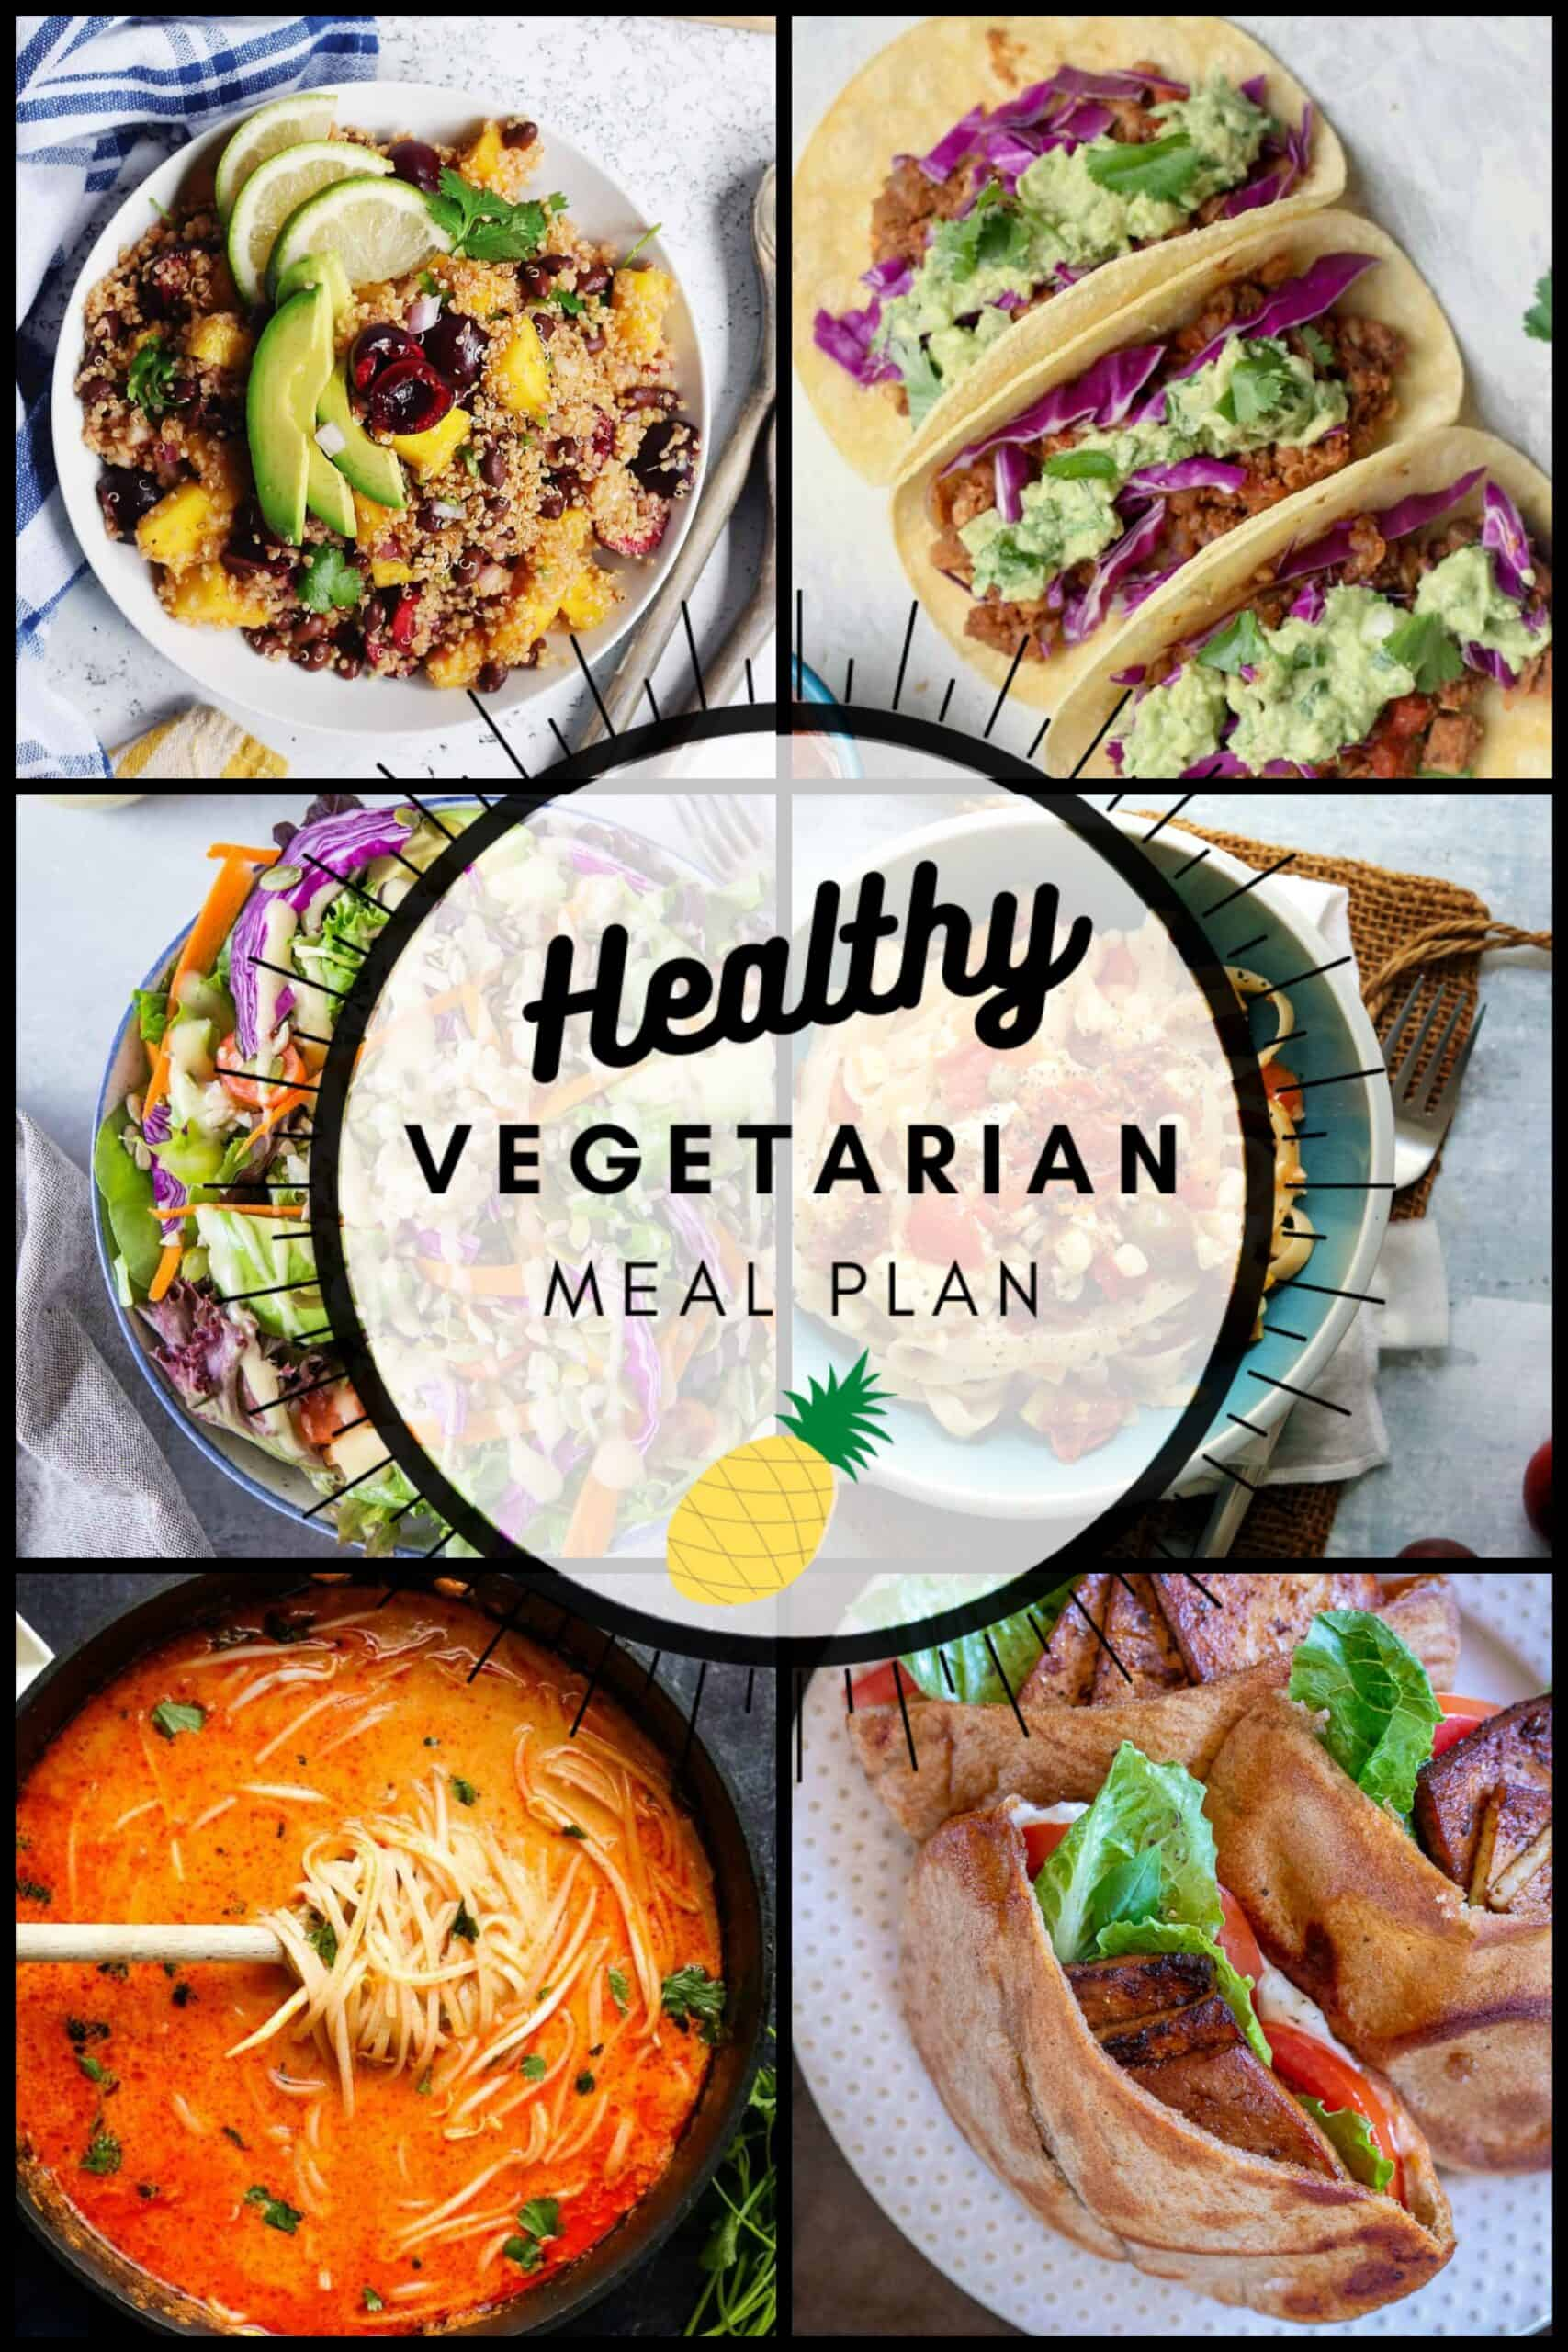 Healthy Vegetarian Meal Plan with 6 plant-based nutritious meals and one dessert